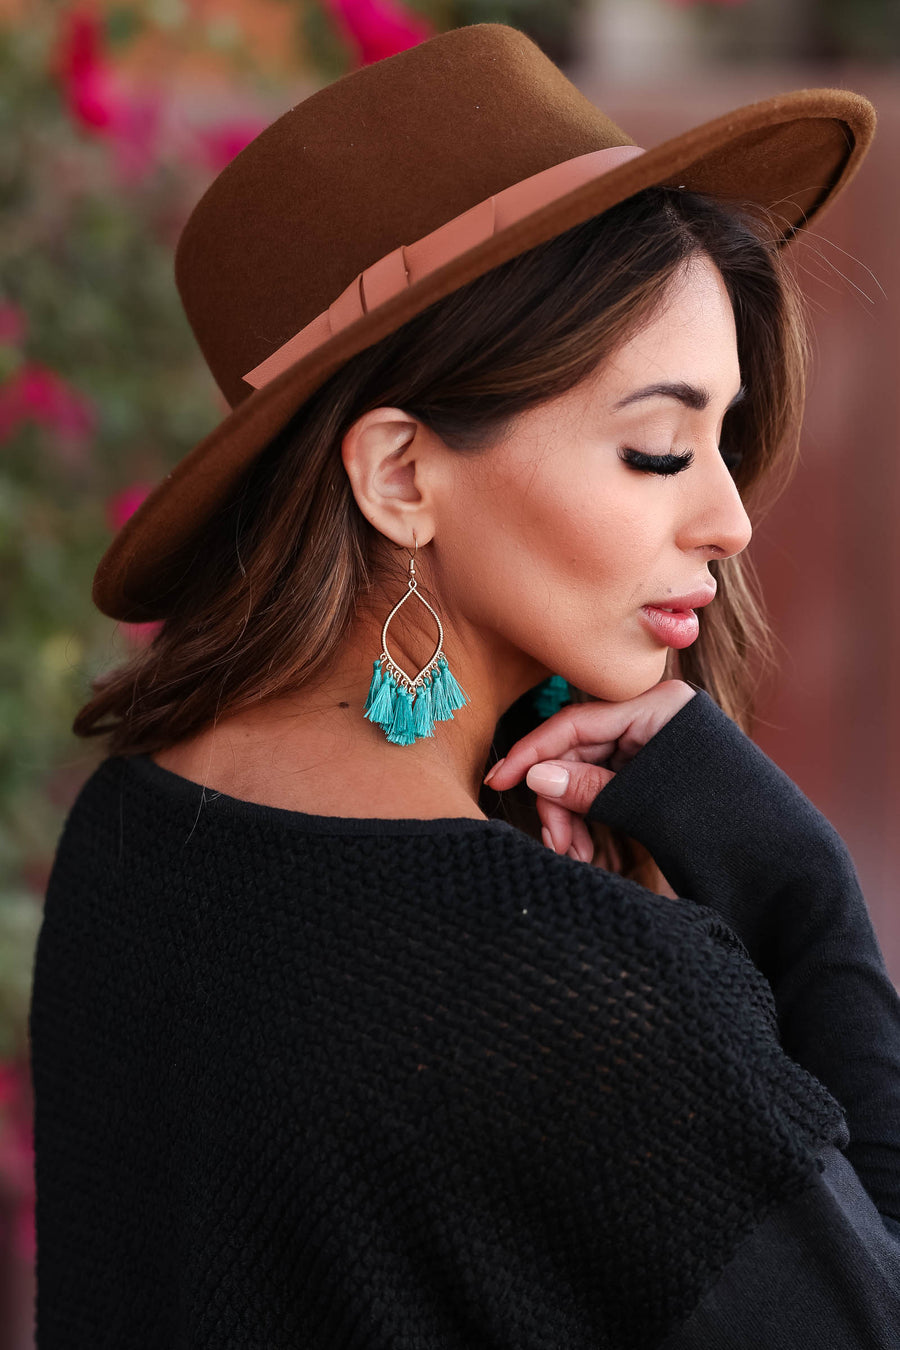 Reason To Stay Tassel Earrings - Turquoise closet candy womens trendy accessories 1